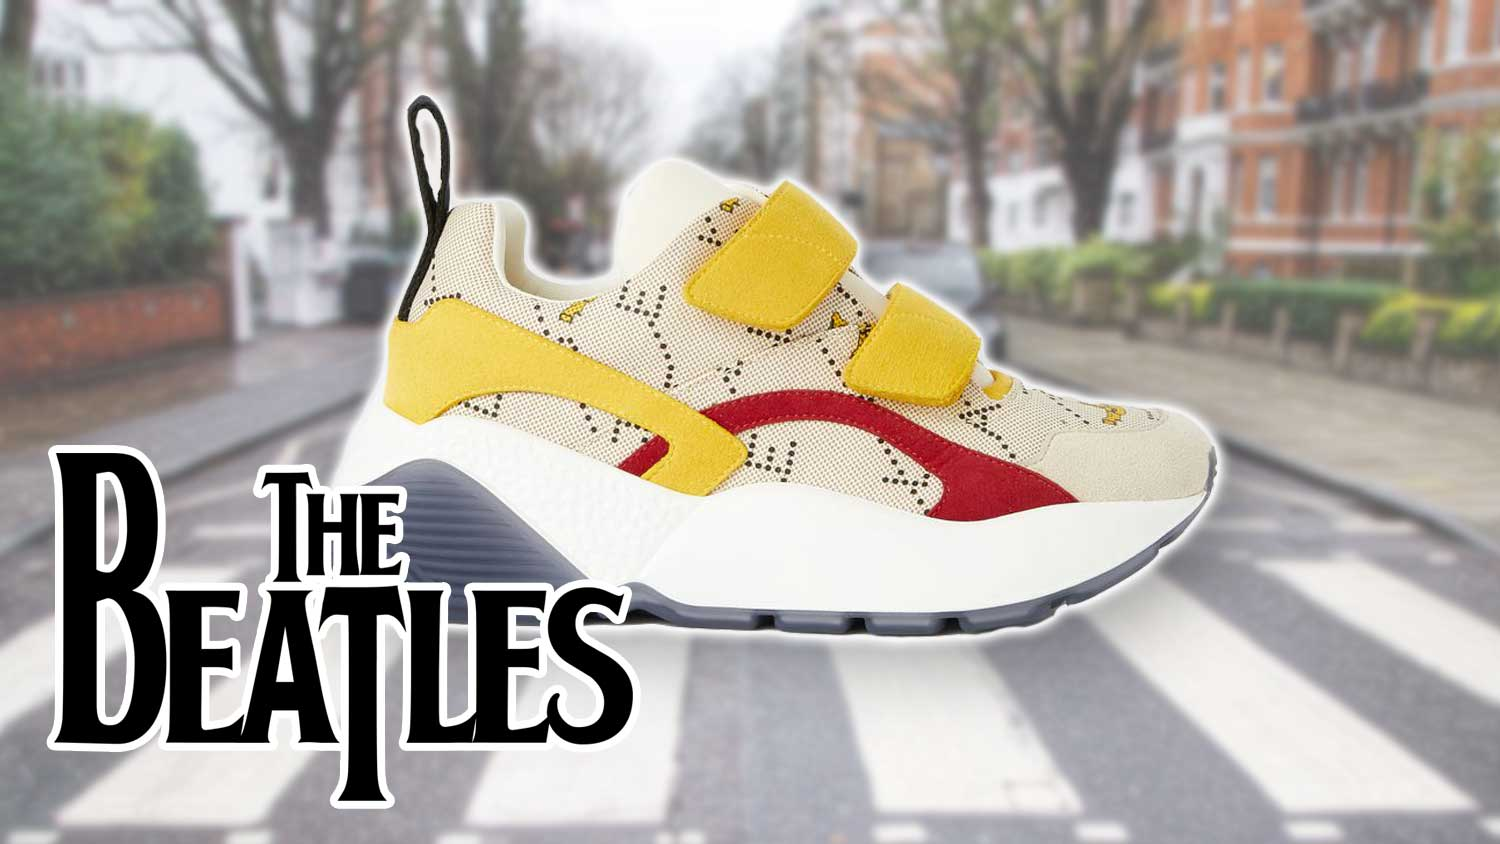 Stella McCartney Just Launched Beatles-Inspired Vegan Shoes